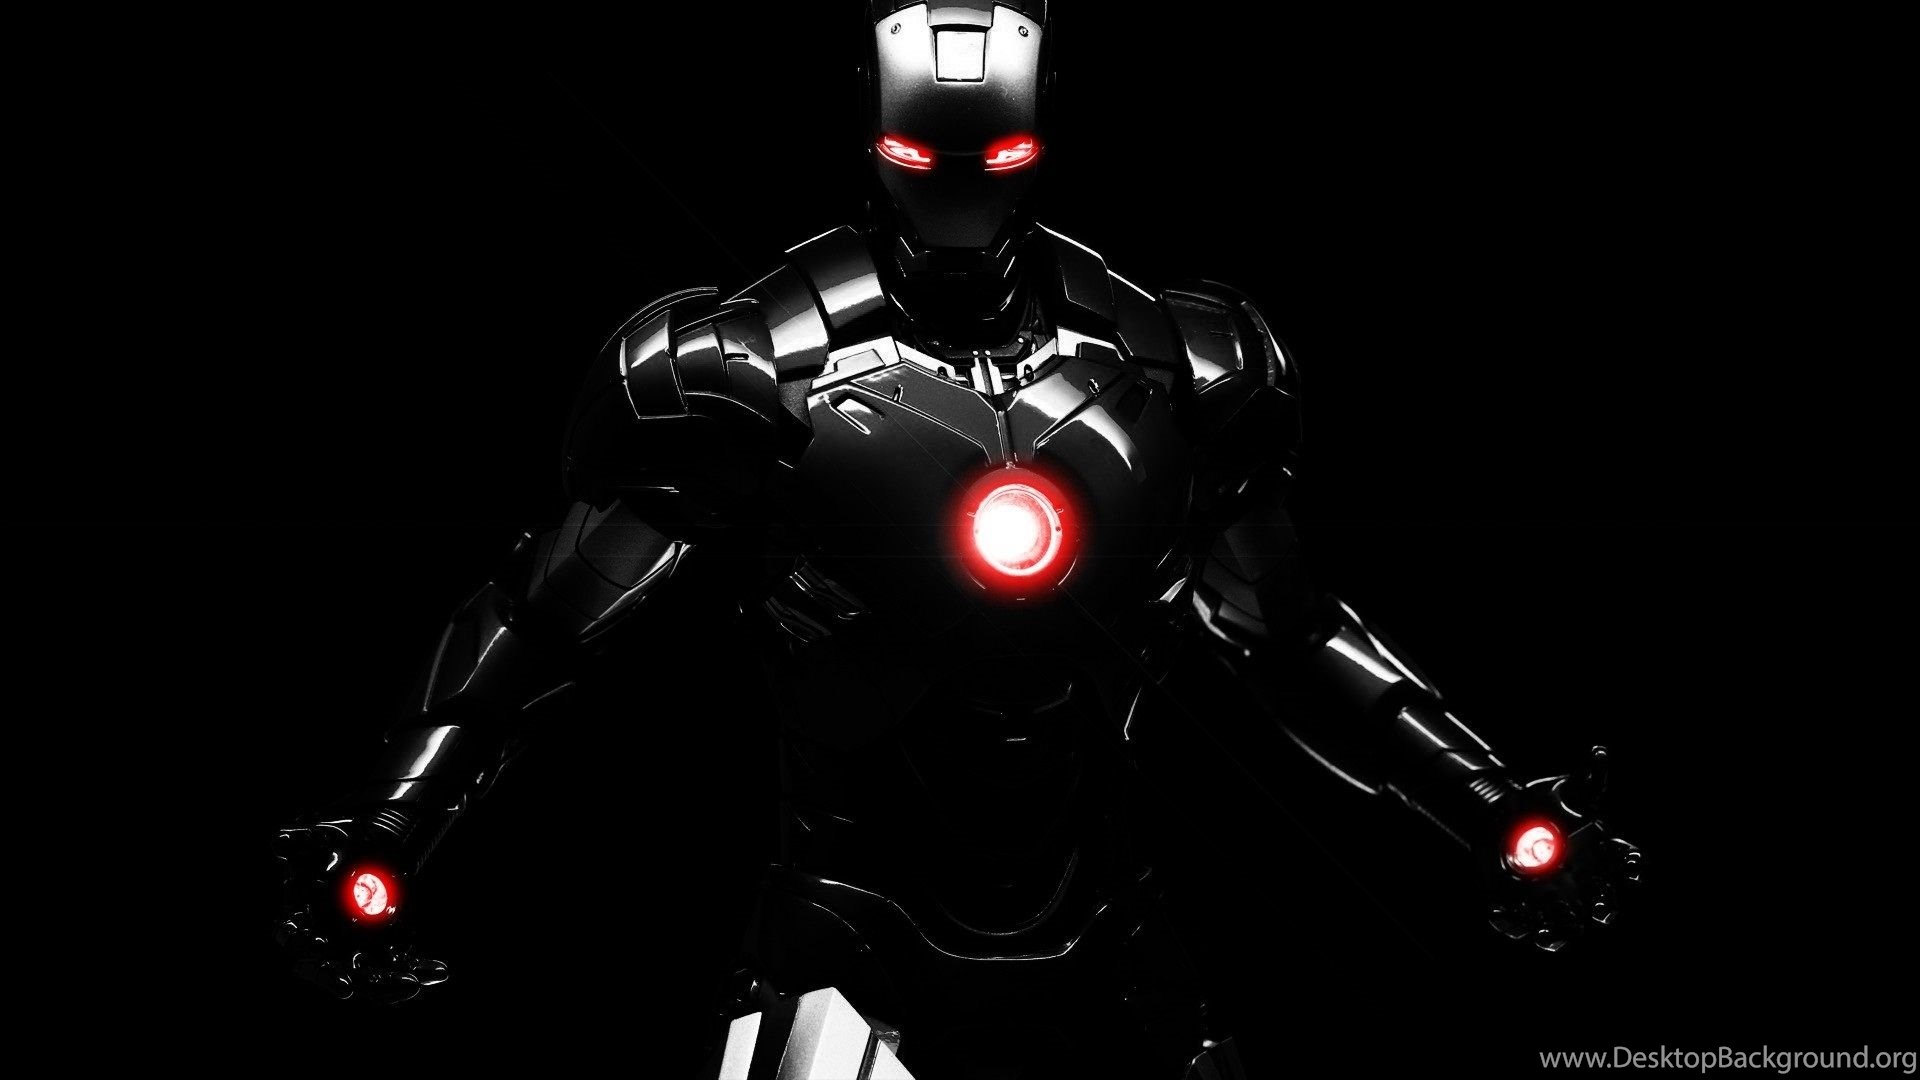 hd wallpaper new black iron man movie hd movie wallpapers for mobile